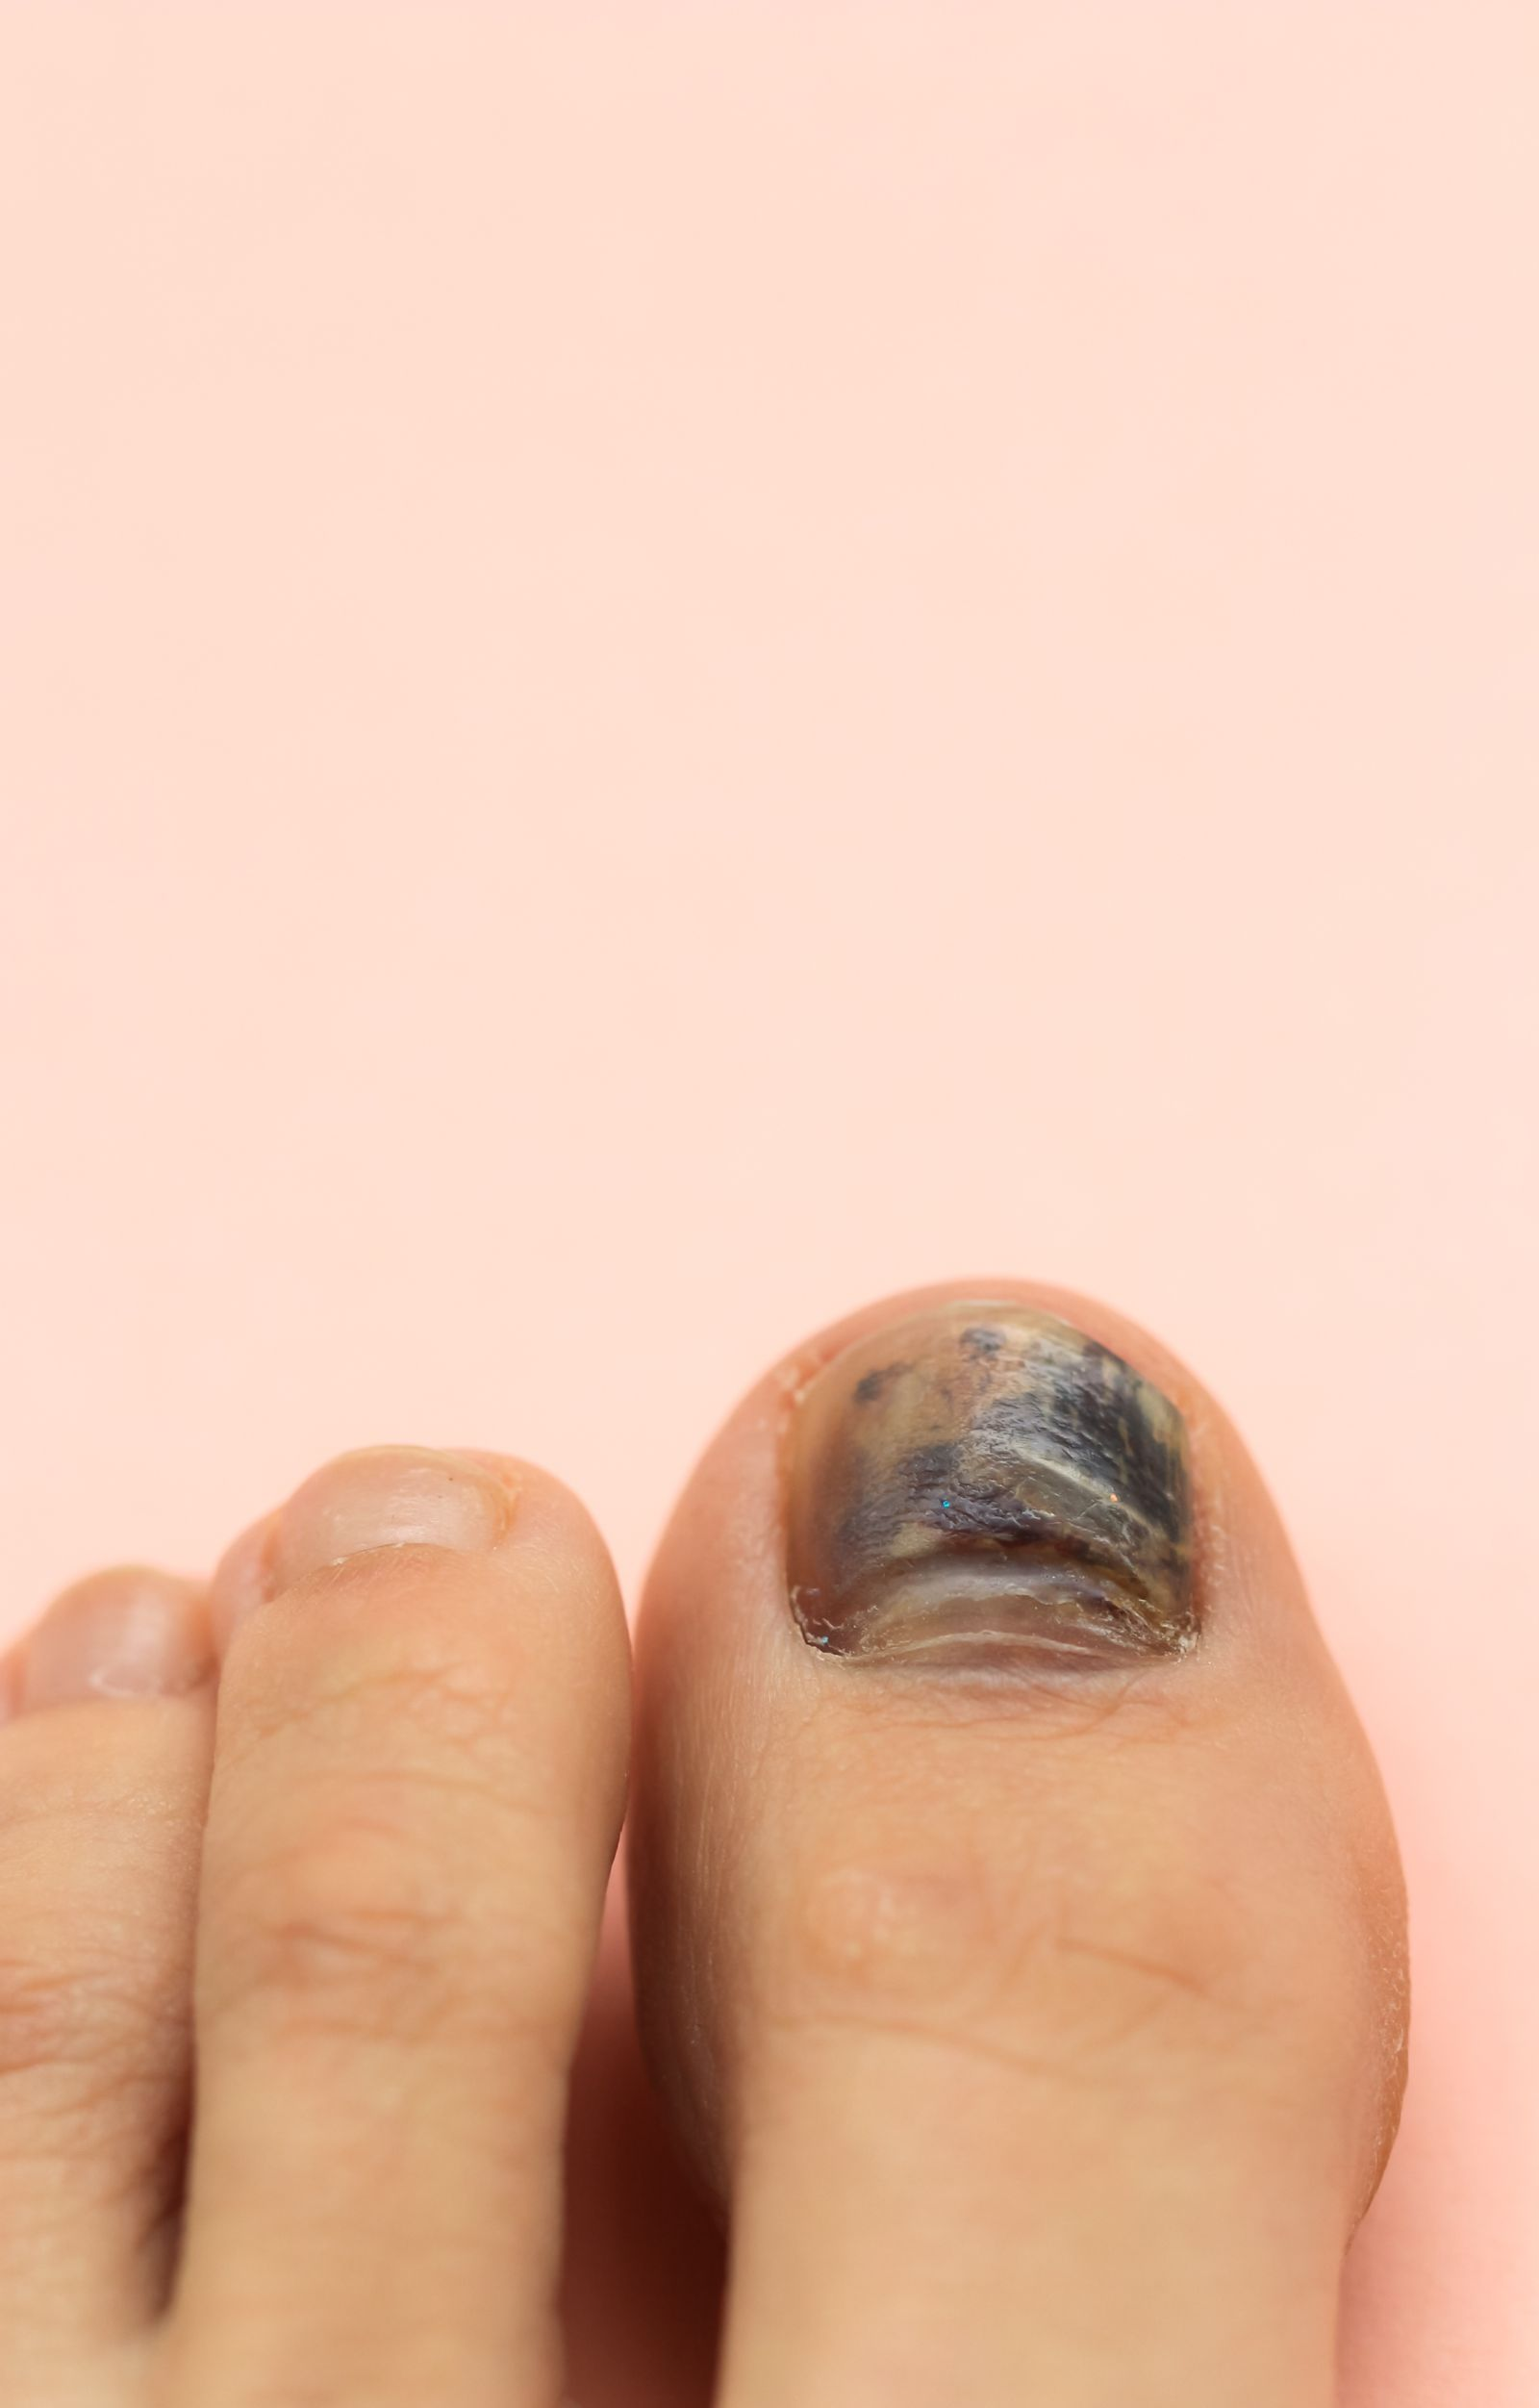 Did your toenail turn black after getting stubbed? It's time to see your podiatrist!